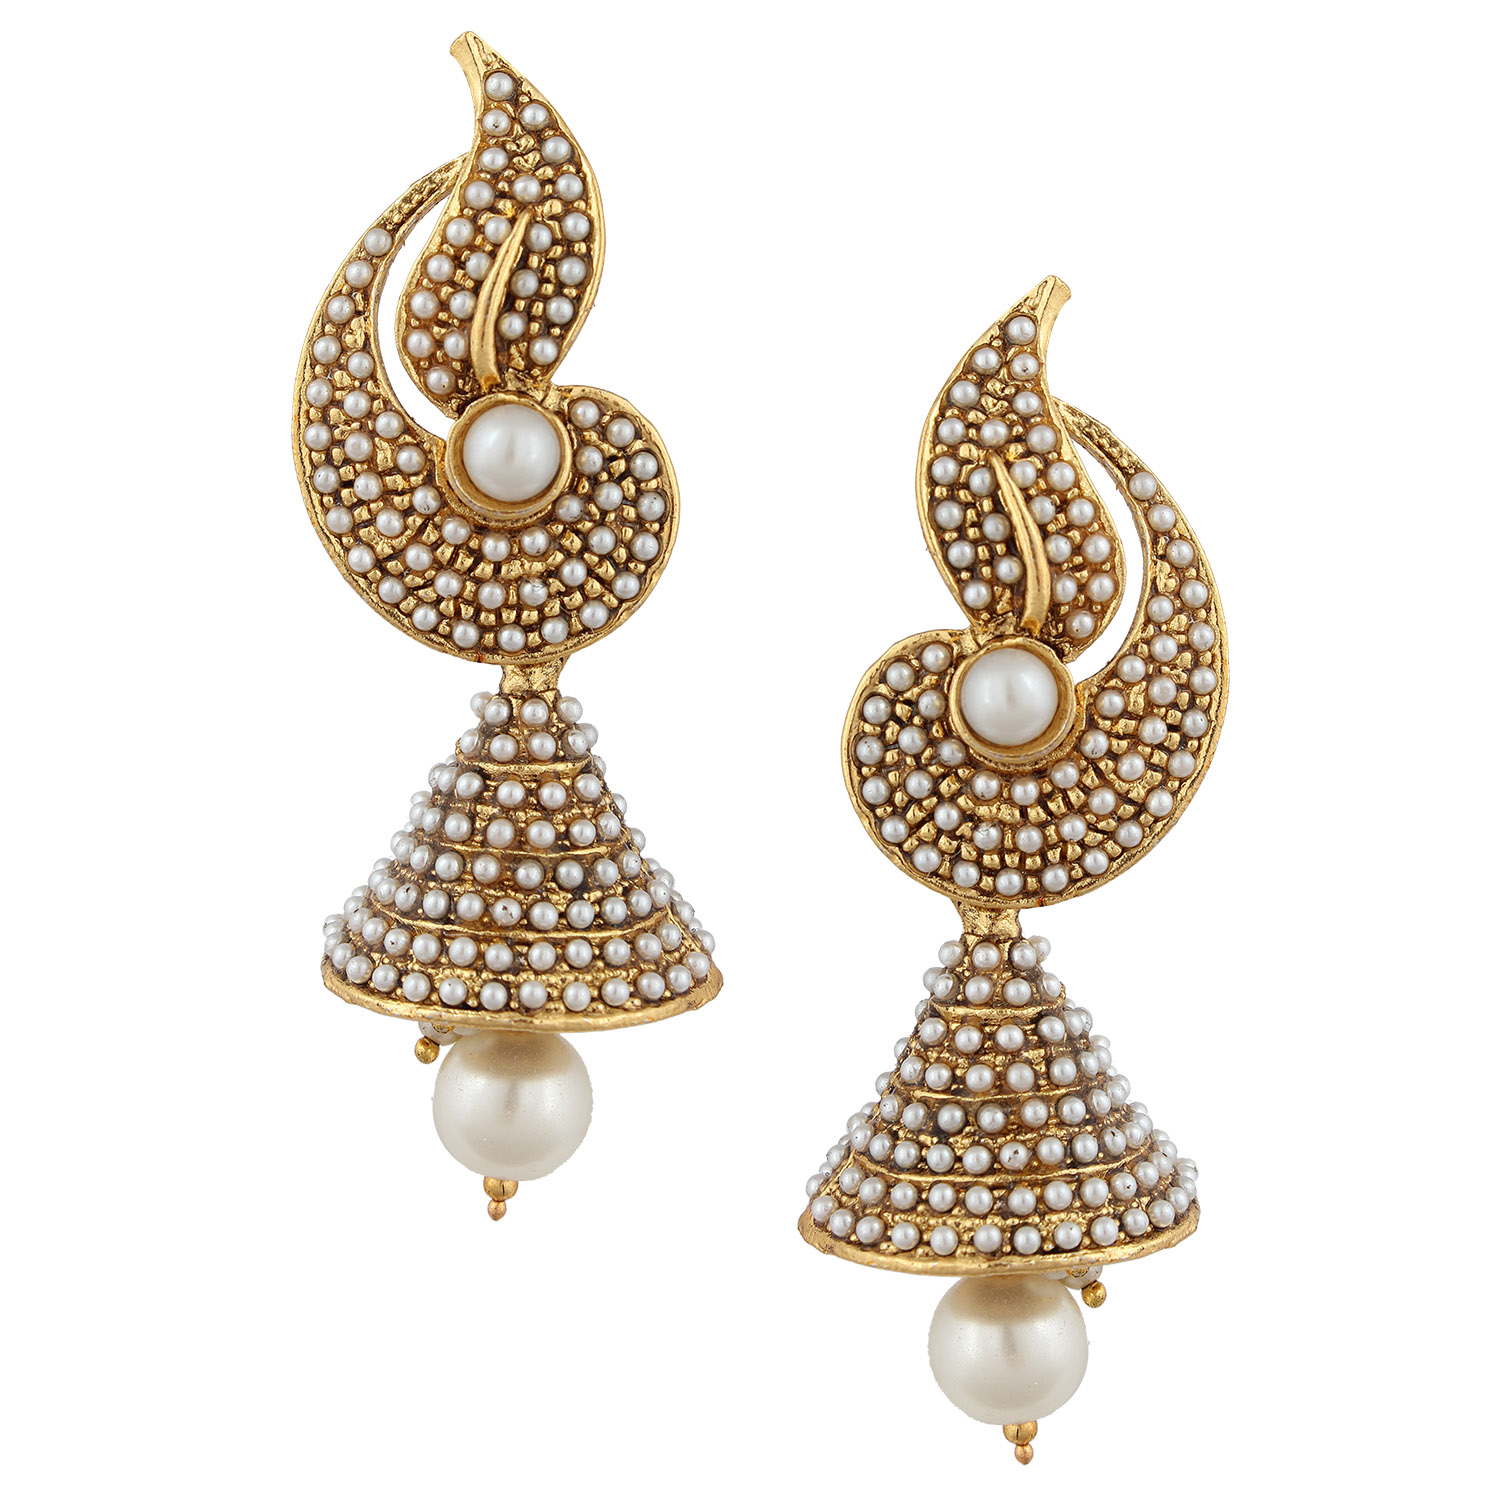 Buy White Flower Indian Pearl Jhumka Earring Jhumki Jhumka Online